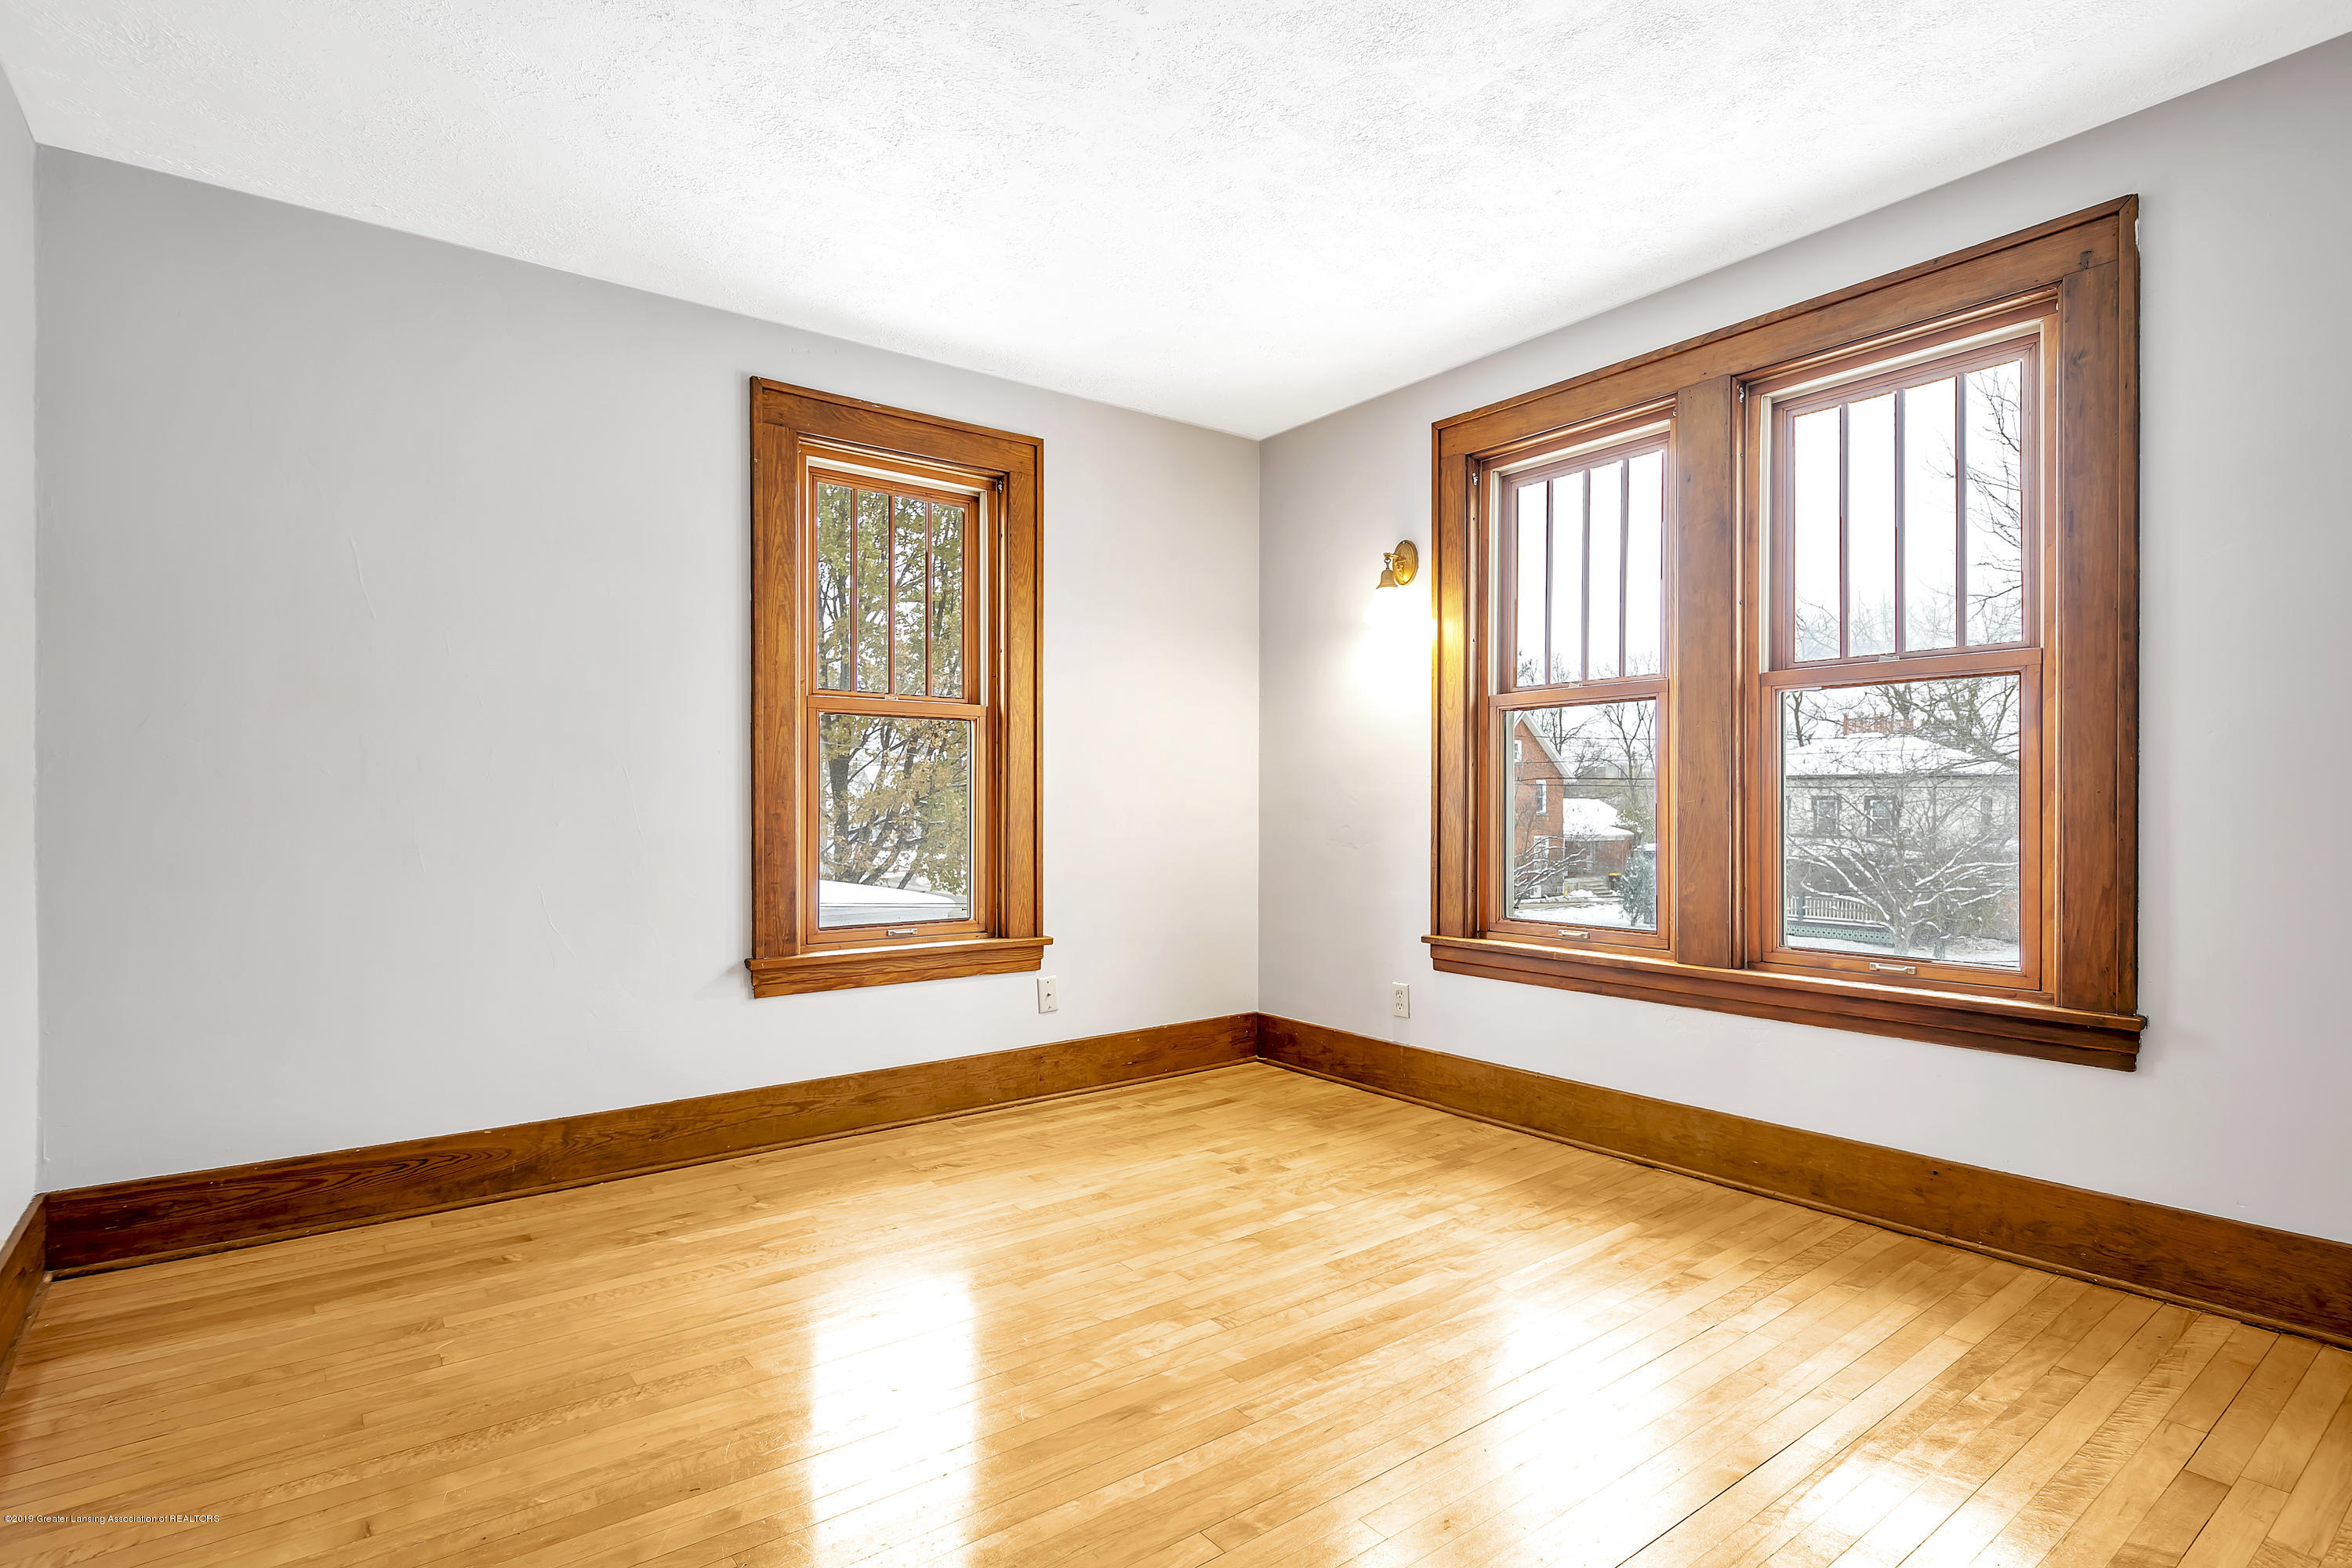 412 E Jefferson St - 412-E-Jefferson-WindowStill-Real-Estate- - 28